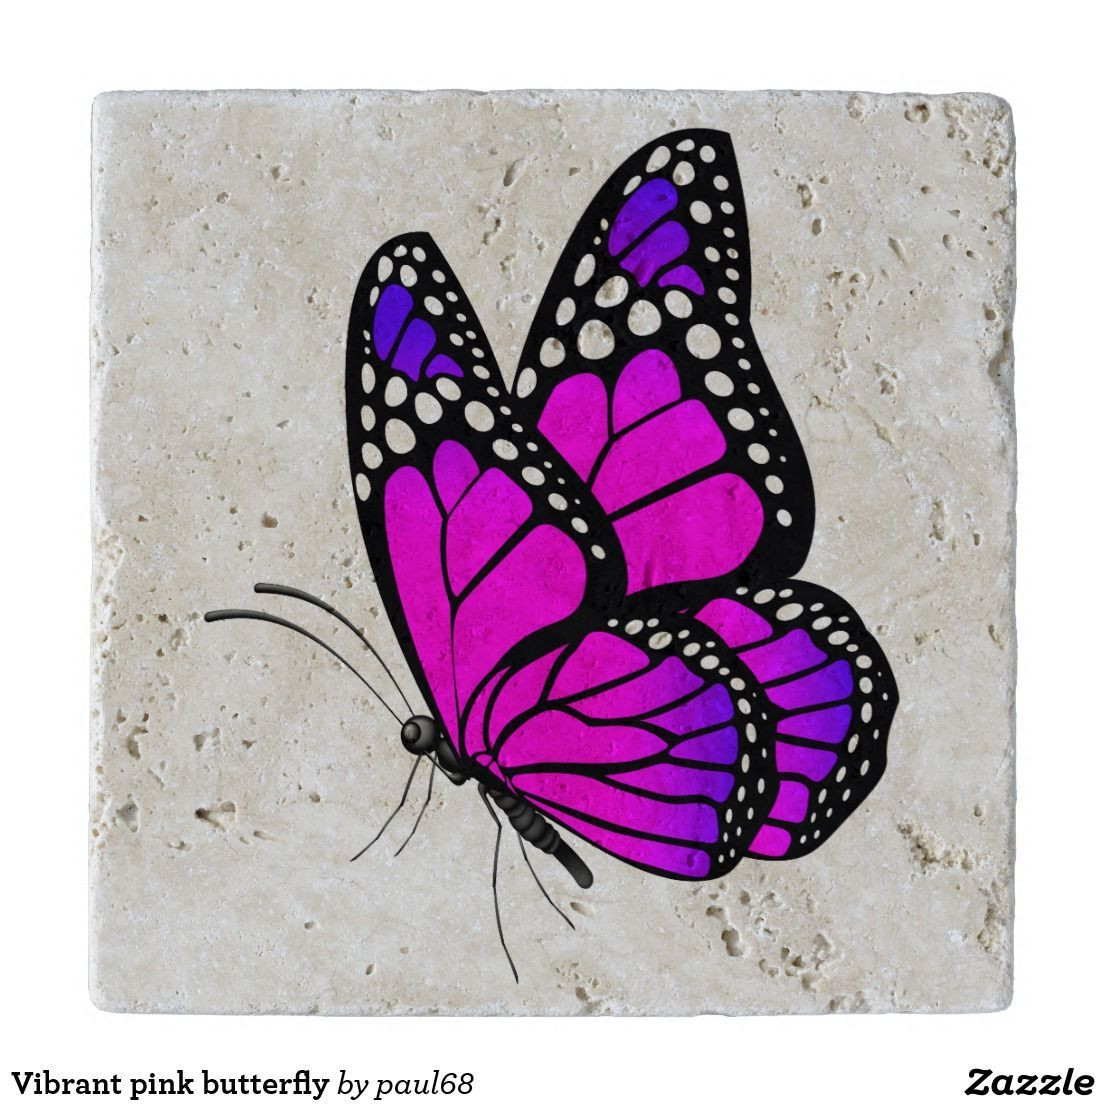 Vibrant pink butterfly trivet in 2020 Butterfly drawing